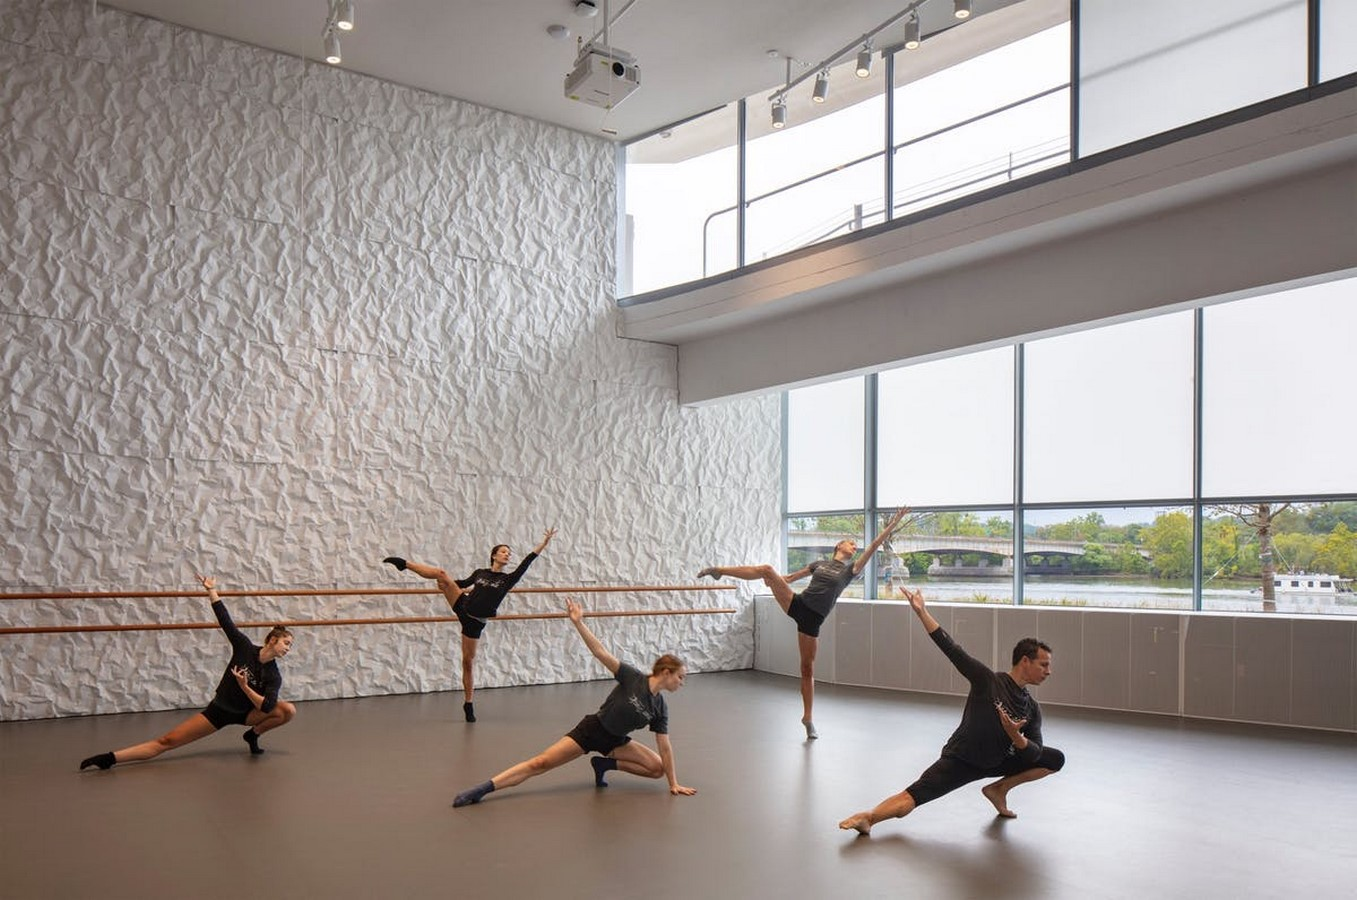 20 Best designed Performing Arts Spaces -Sheet16